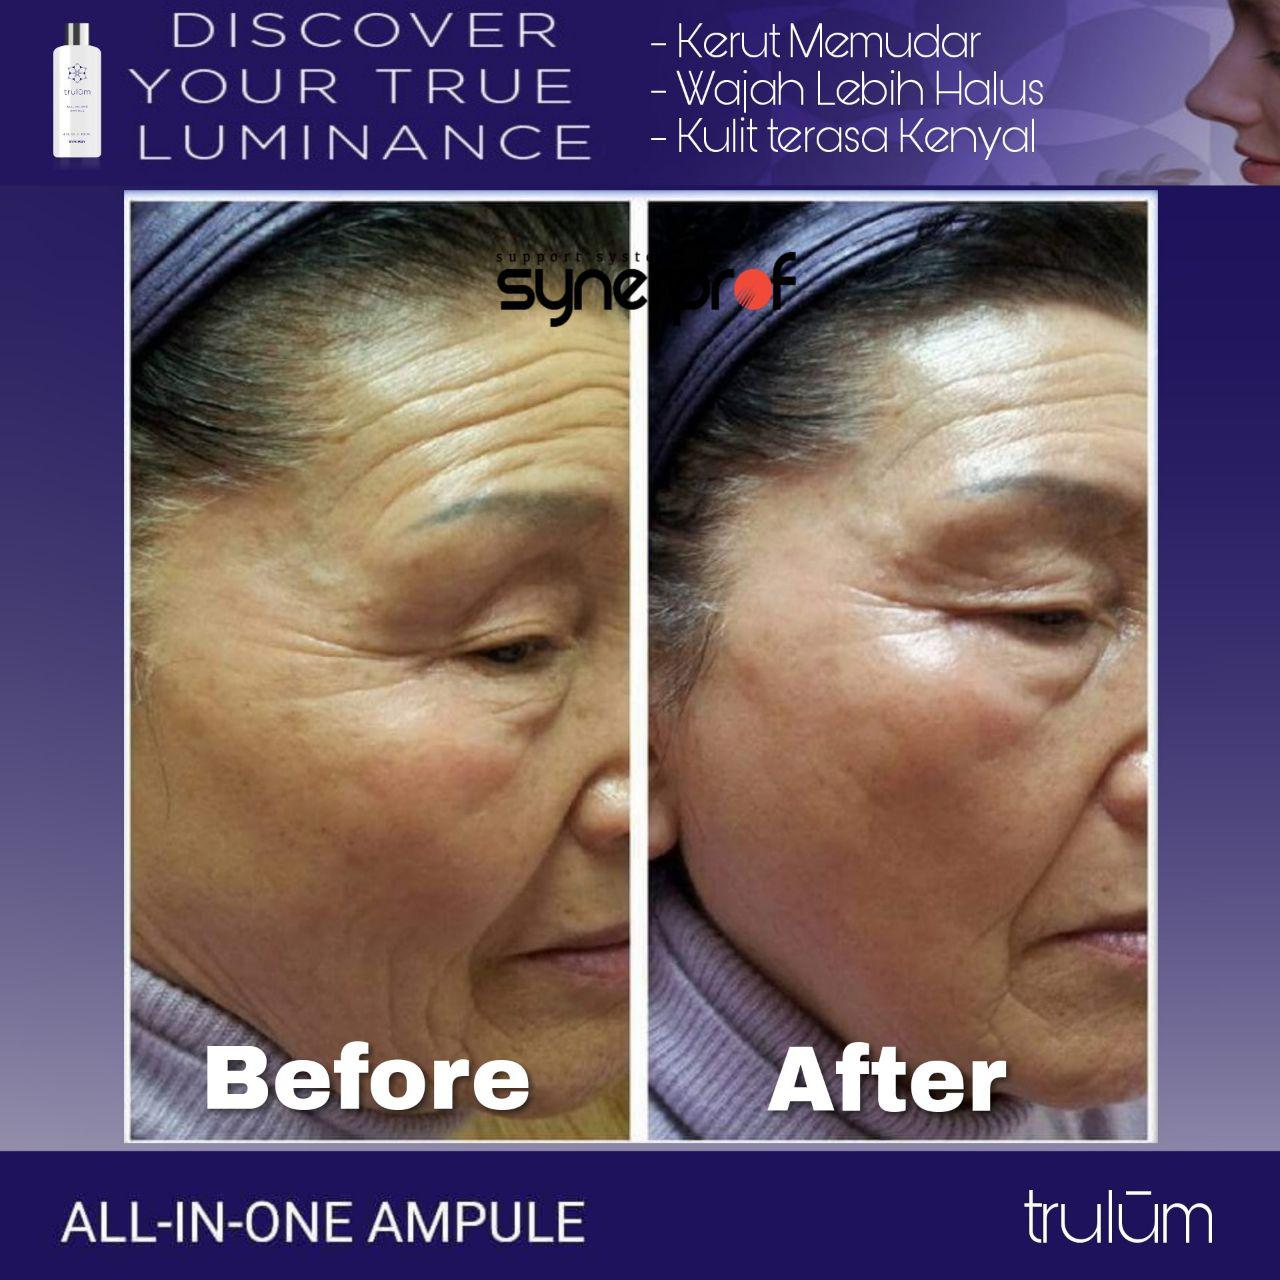 Jual Trulum All In One Ampoule Di Sukasari, Serang WA: 08112338376